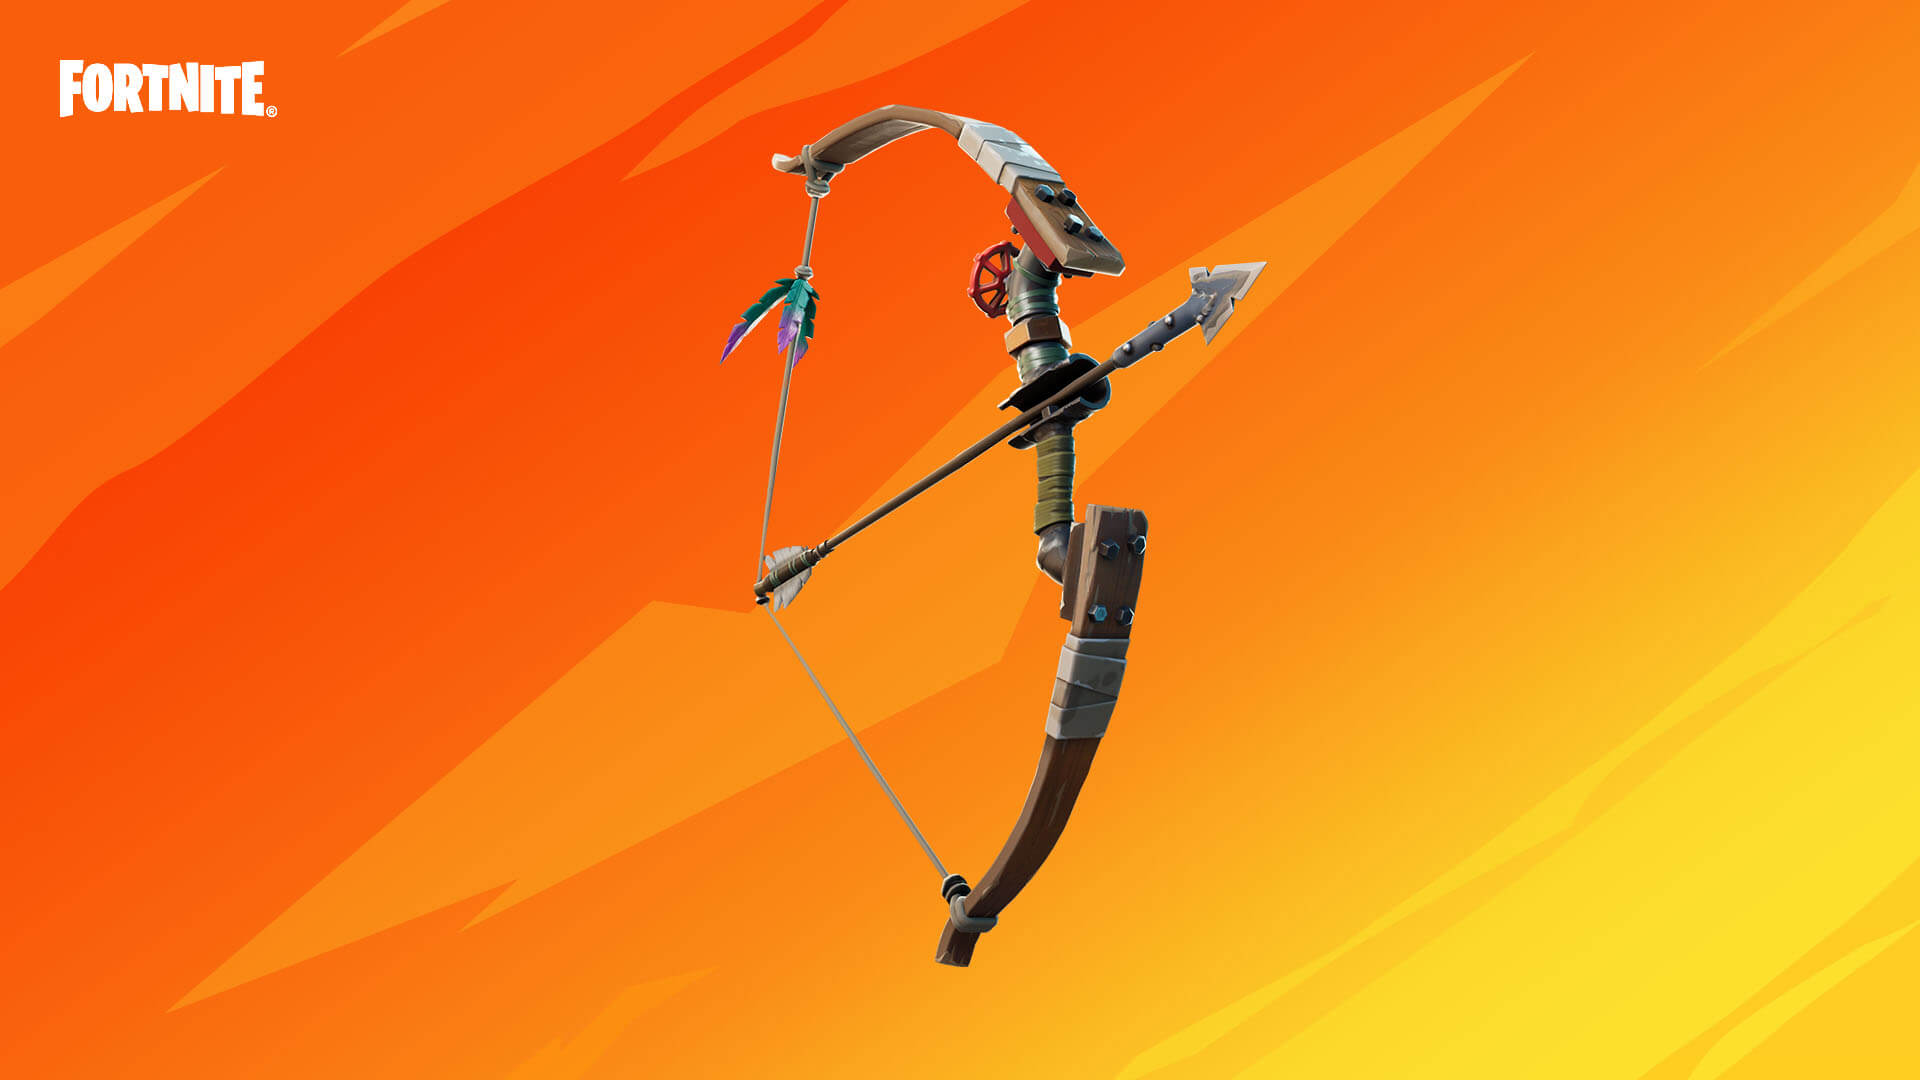 Fortnite Makeshift Bow